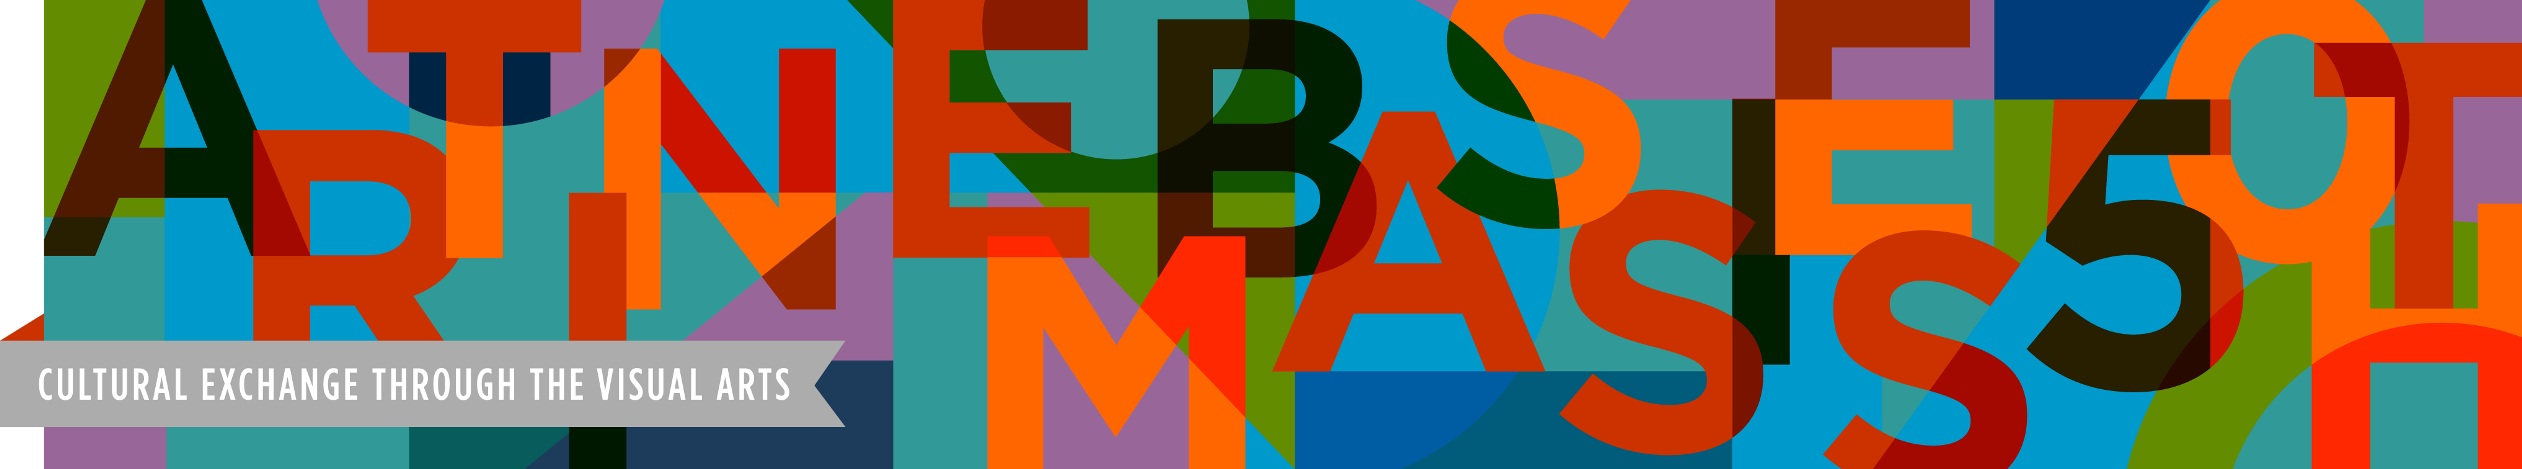 art in embassies 50th anniversary logo